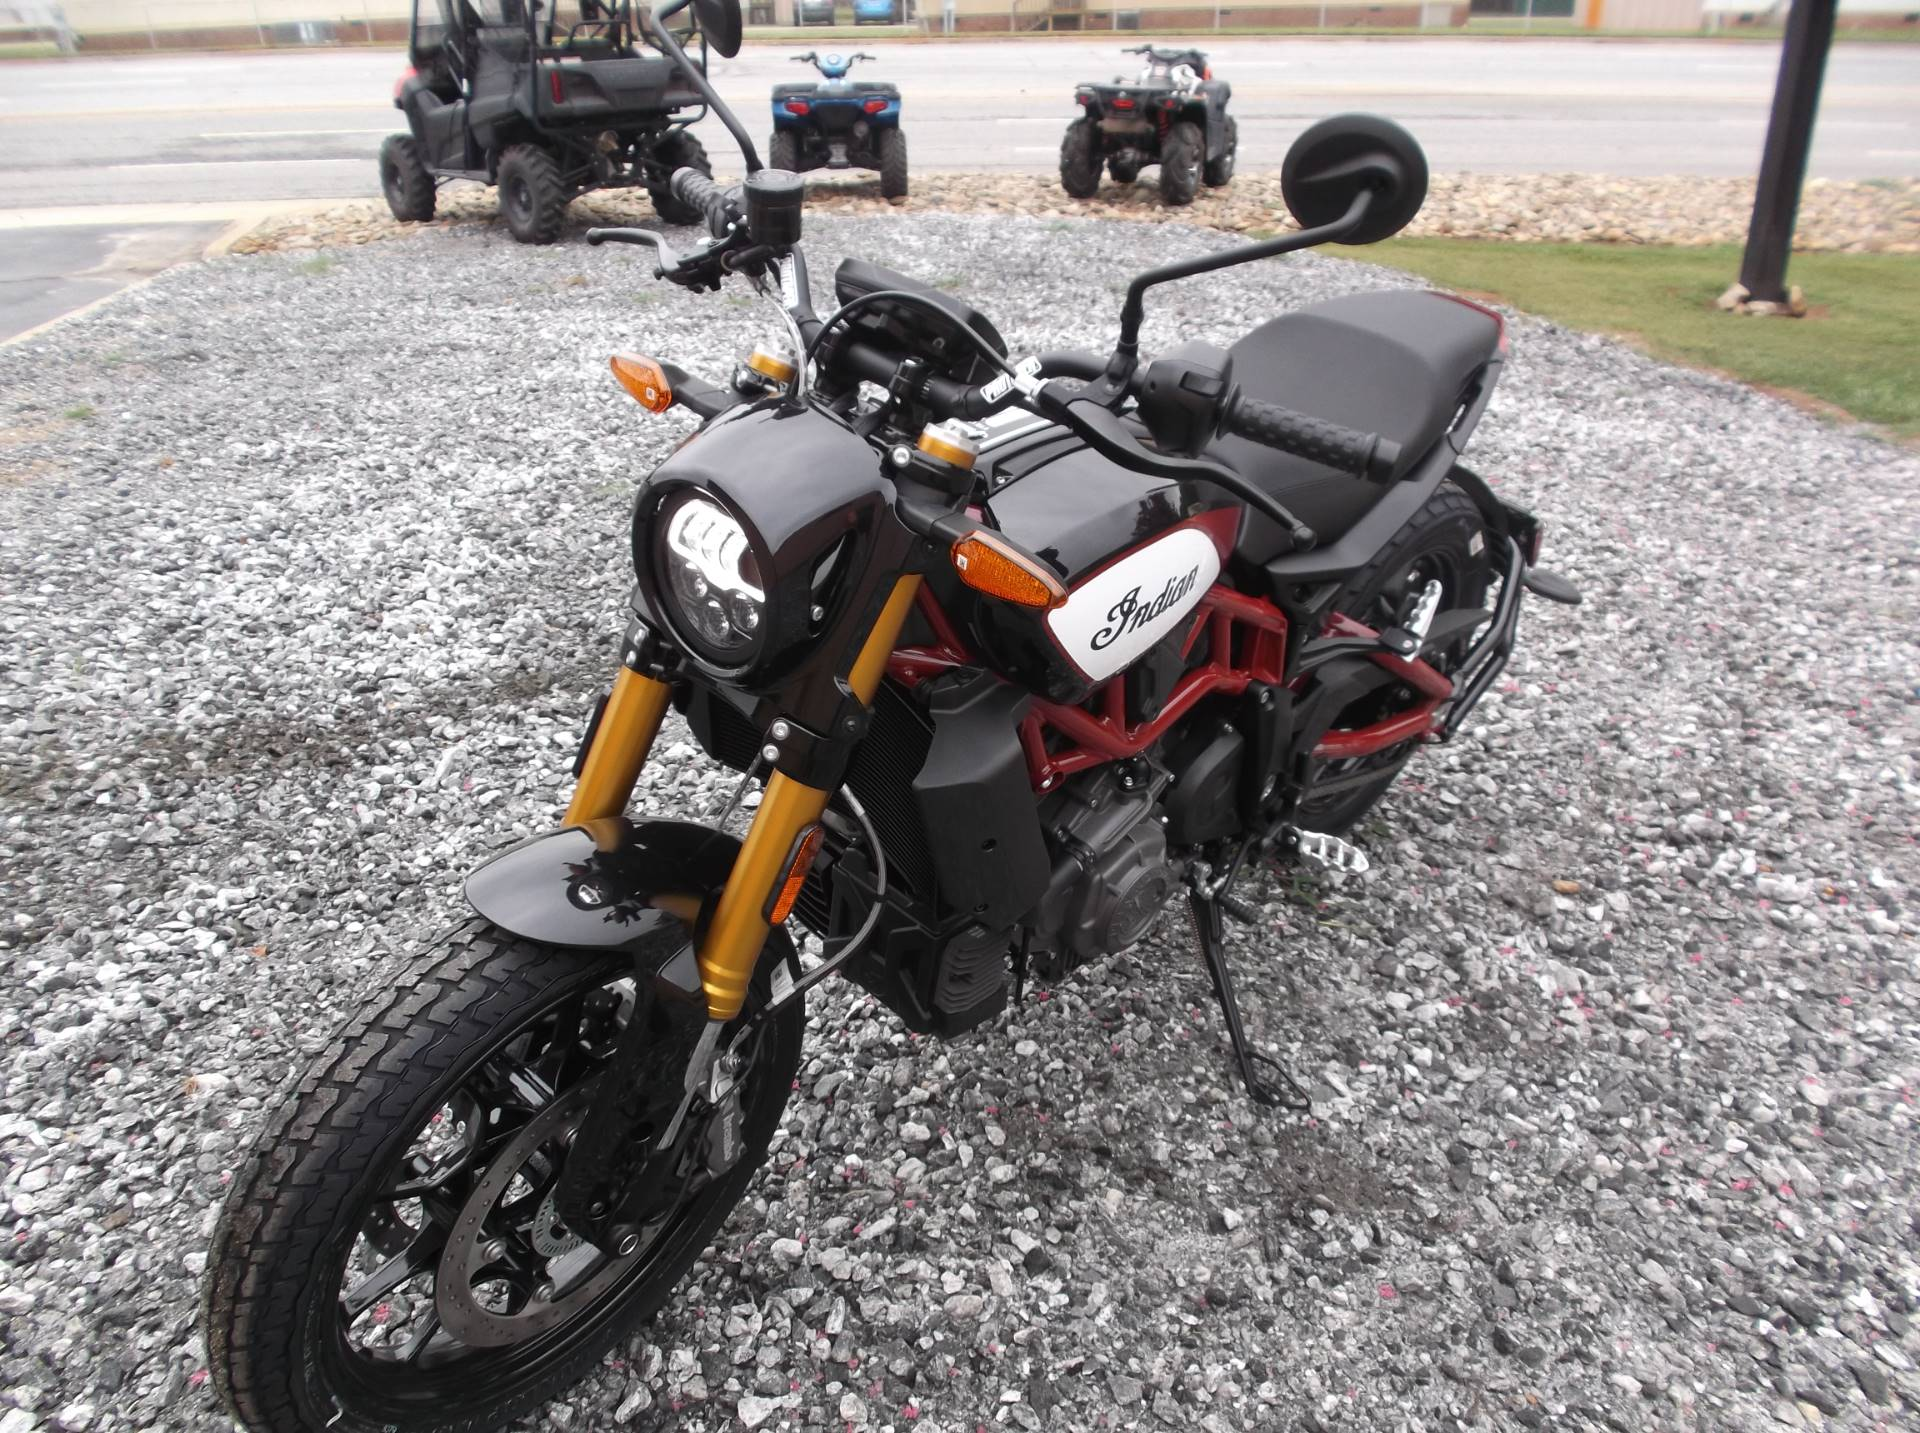 2019 Indian FTR™ 1200 S in Greer, South Carolina - Photo 13